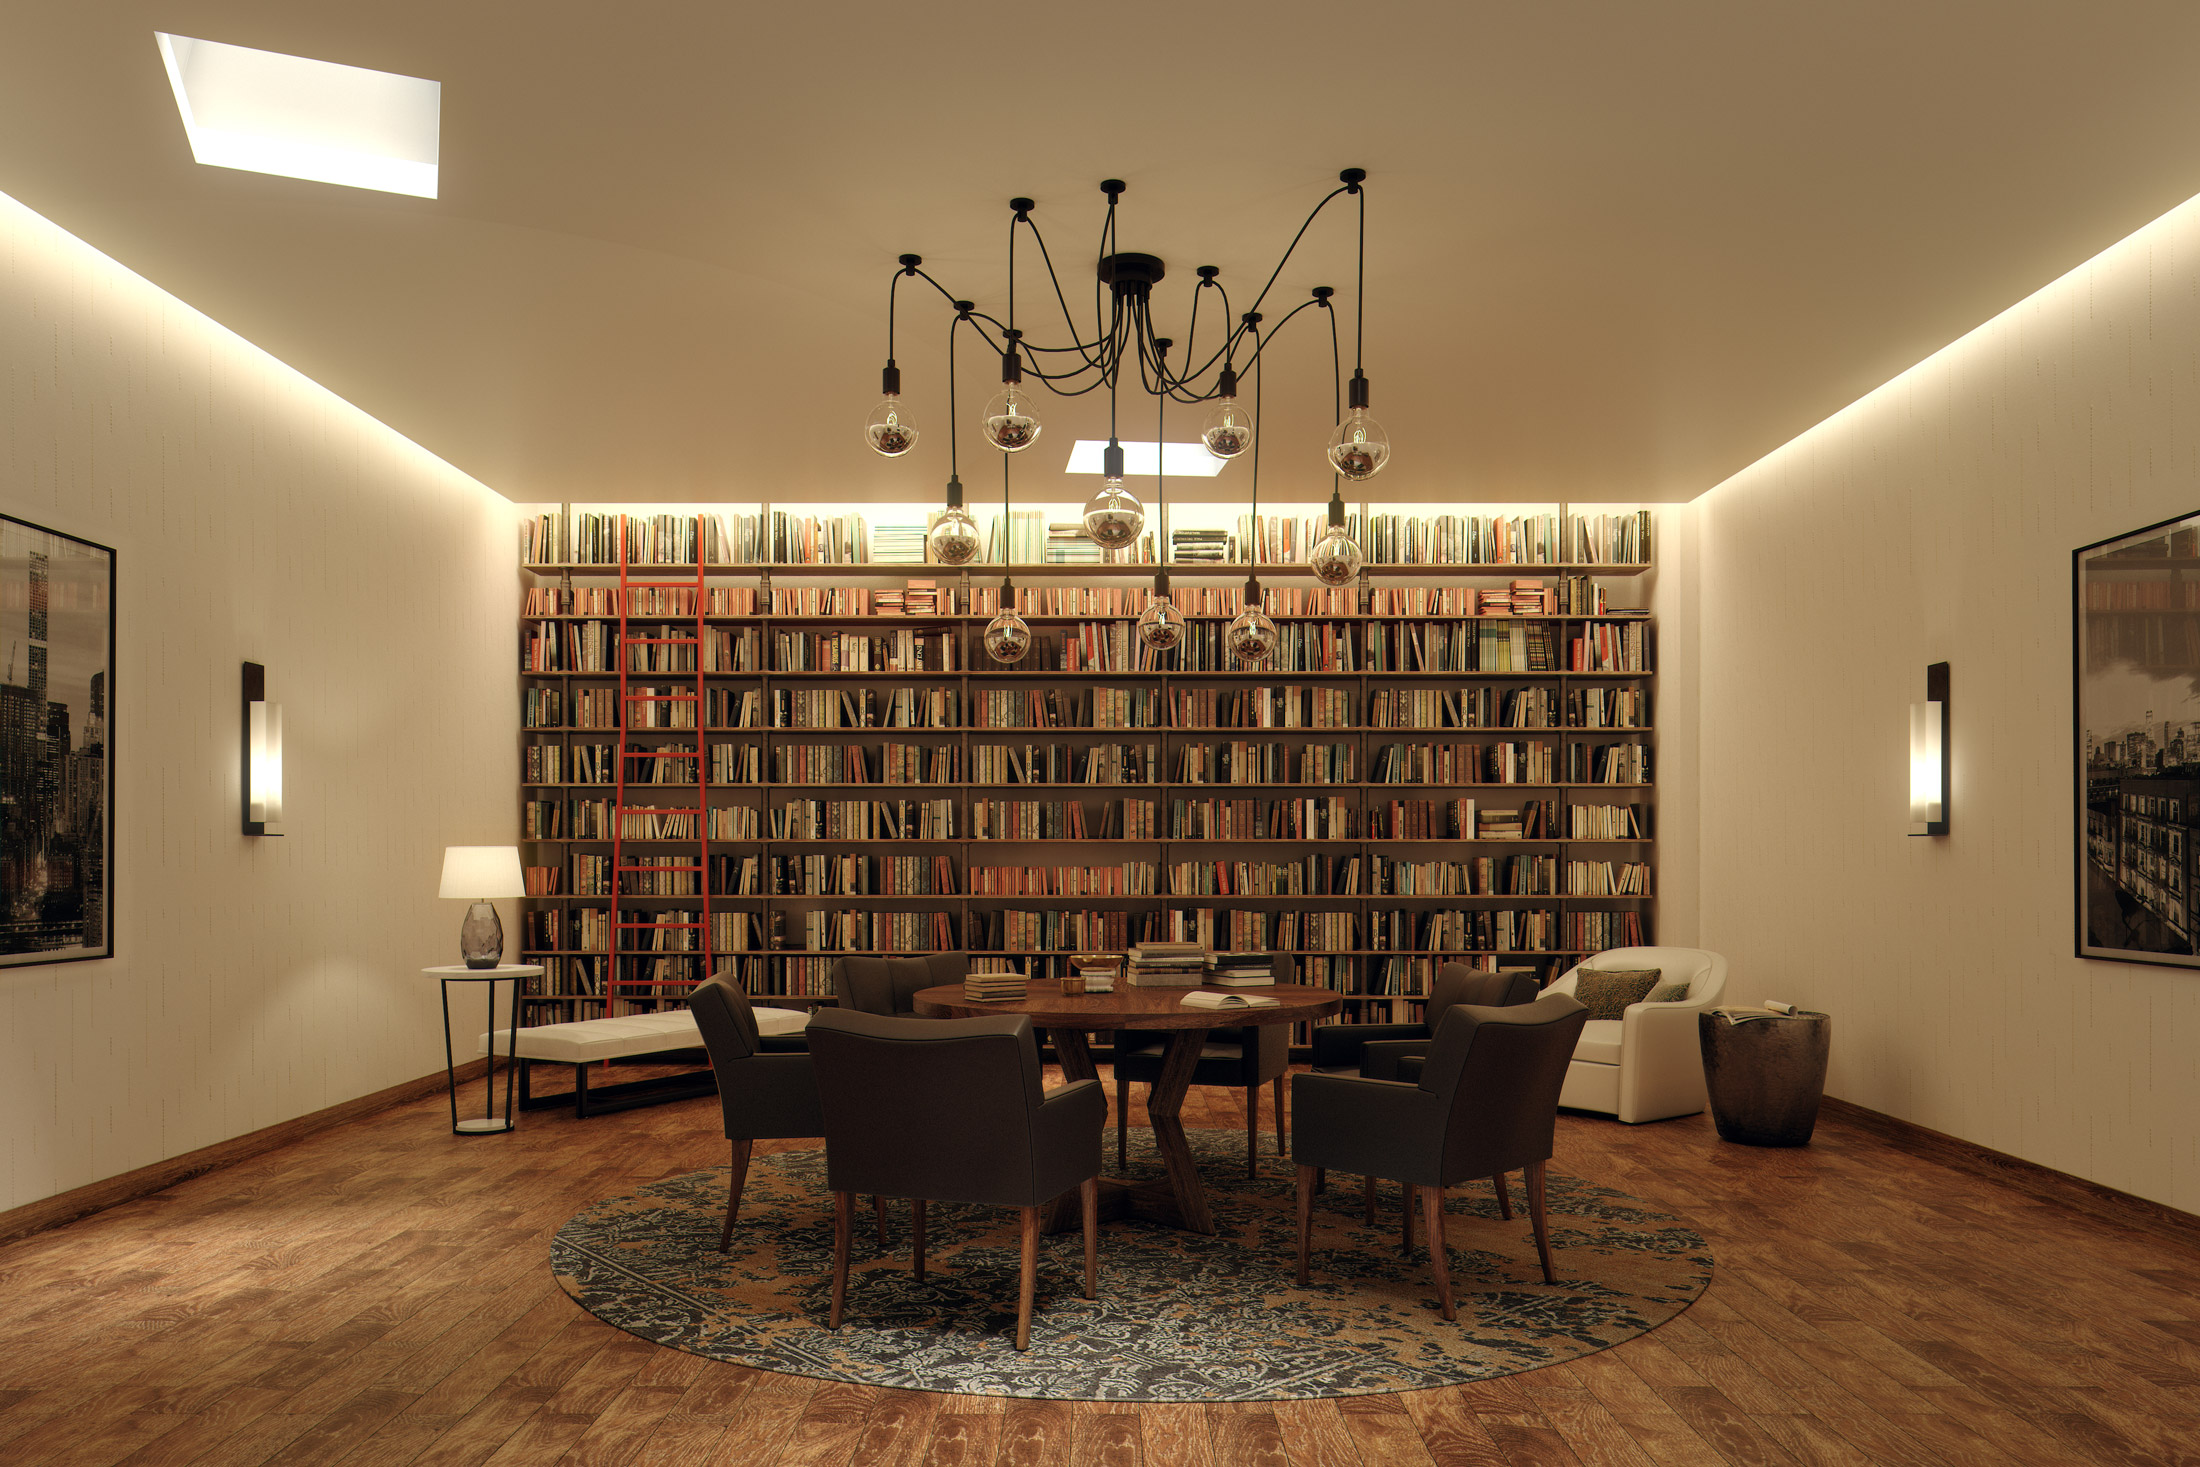 Architectural Rendering of the library of the 525 West 52nd Street project located in Hell's Kitchen, New York City